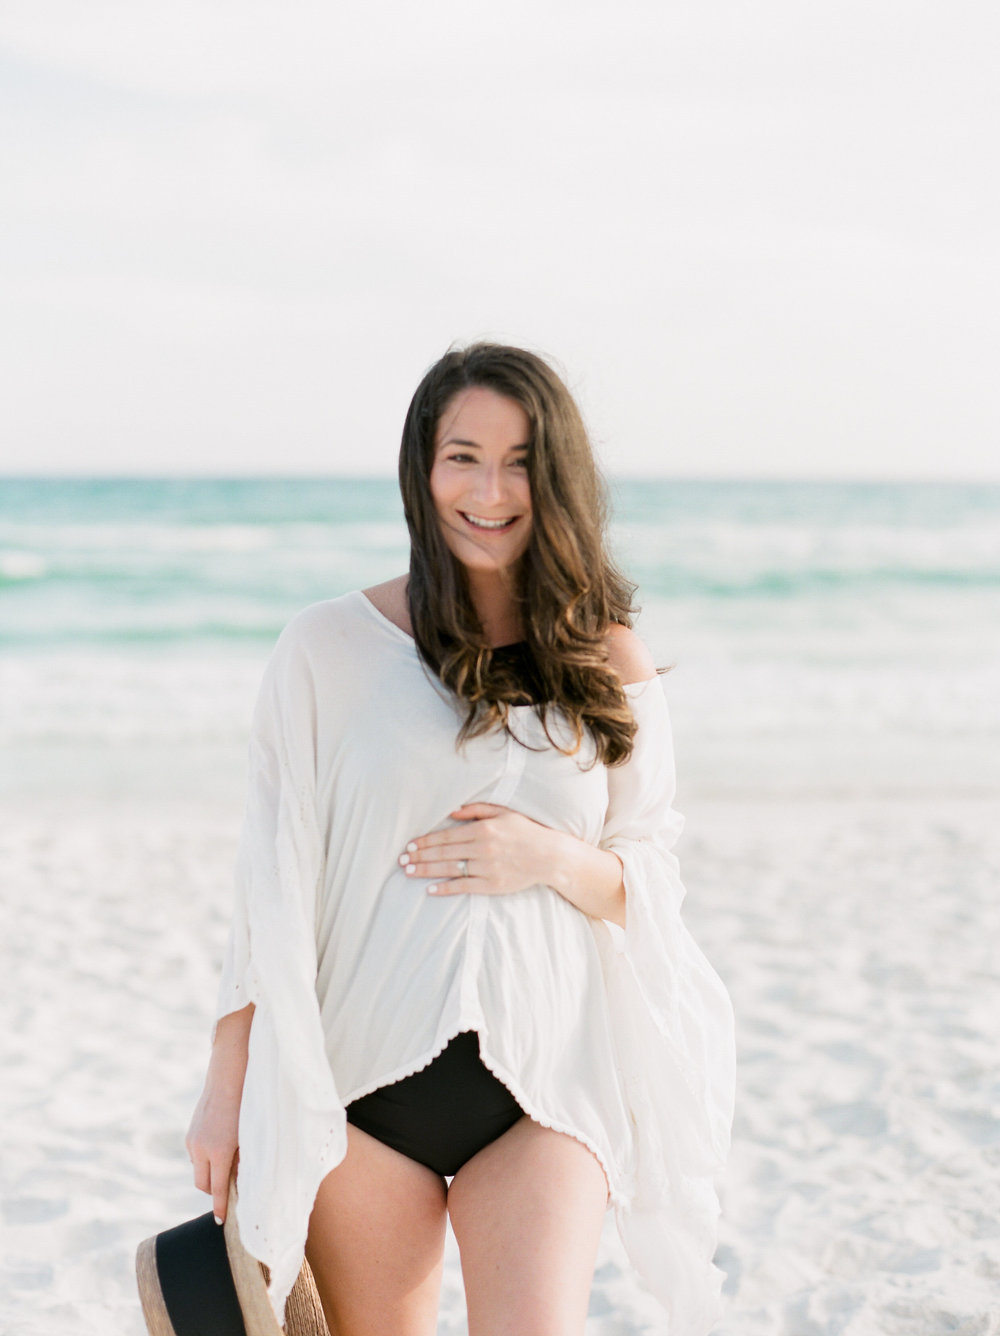 Beach Maternity Session | Kaylie Poplin Photography | Victoria Austin Designs